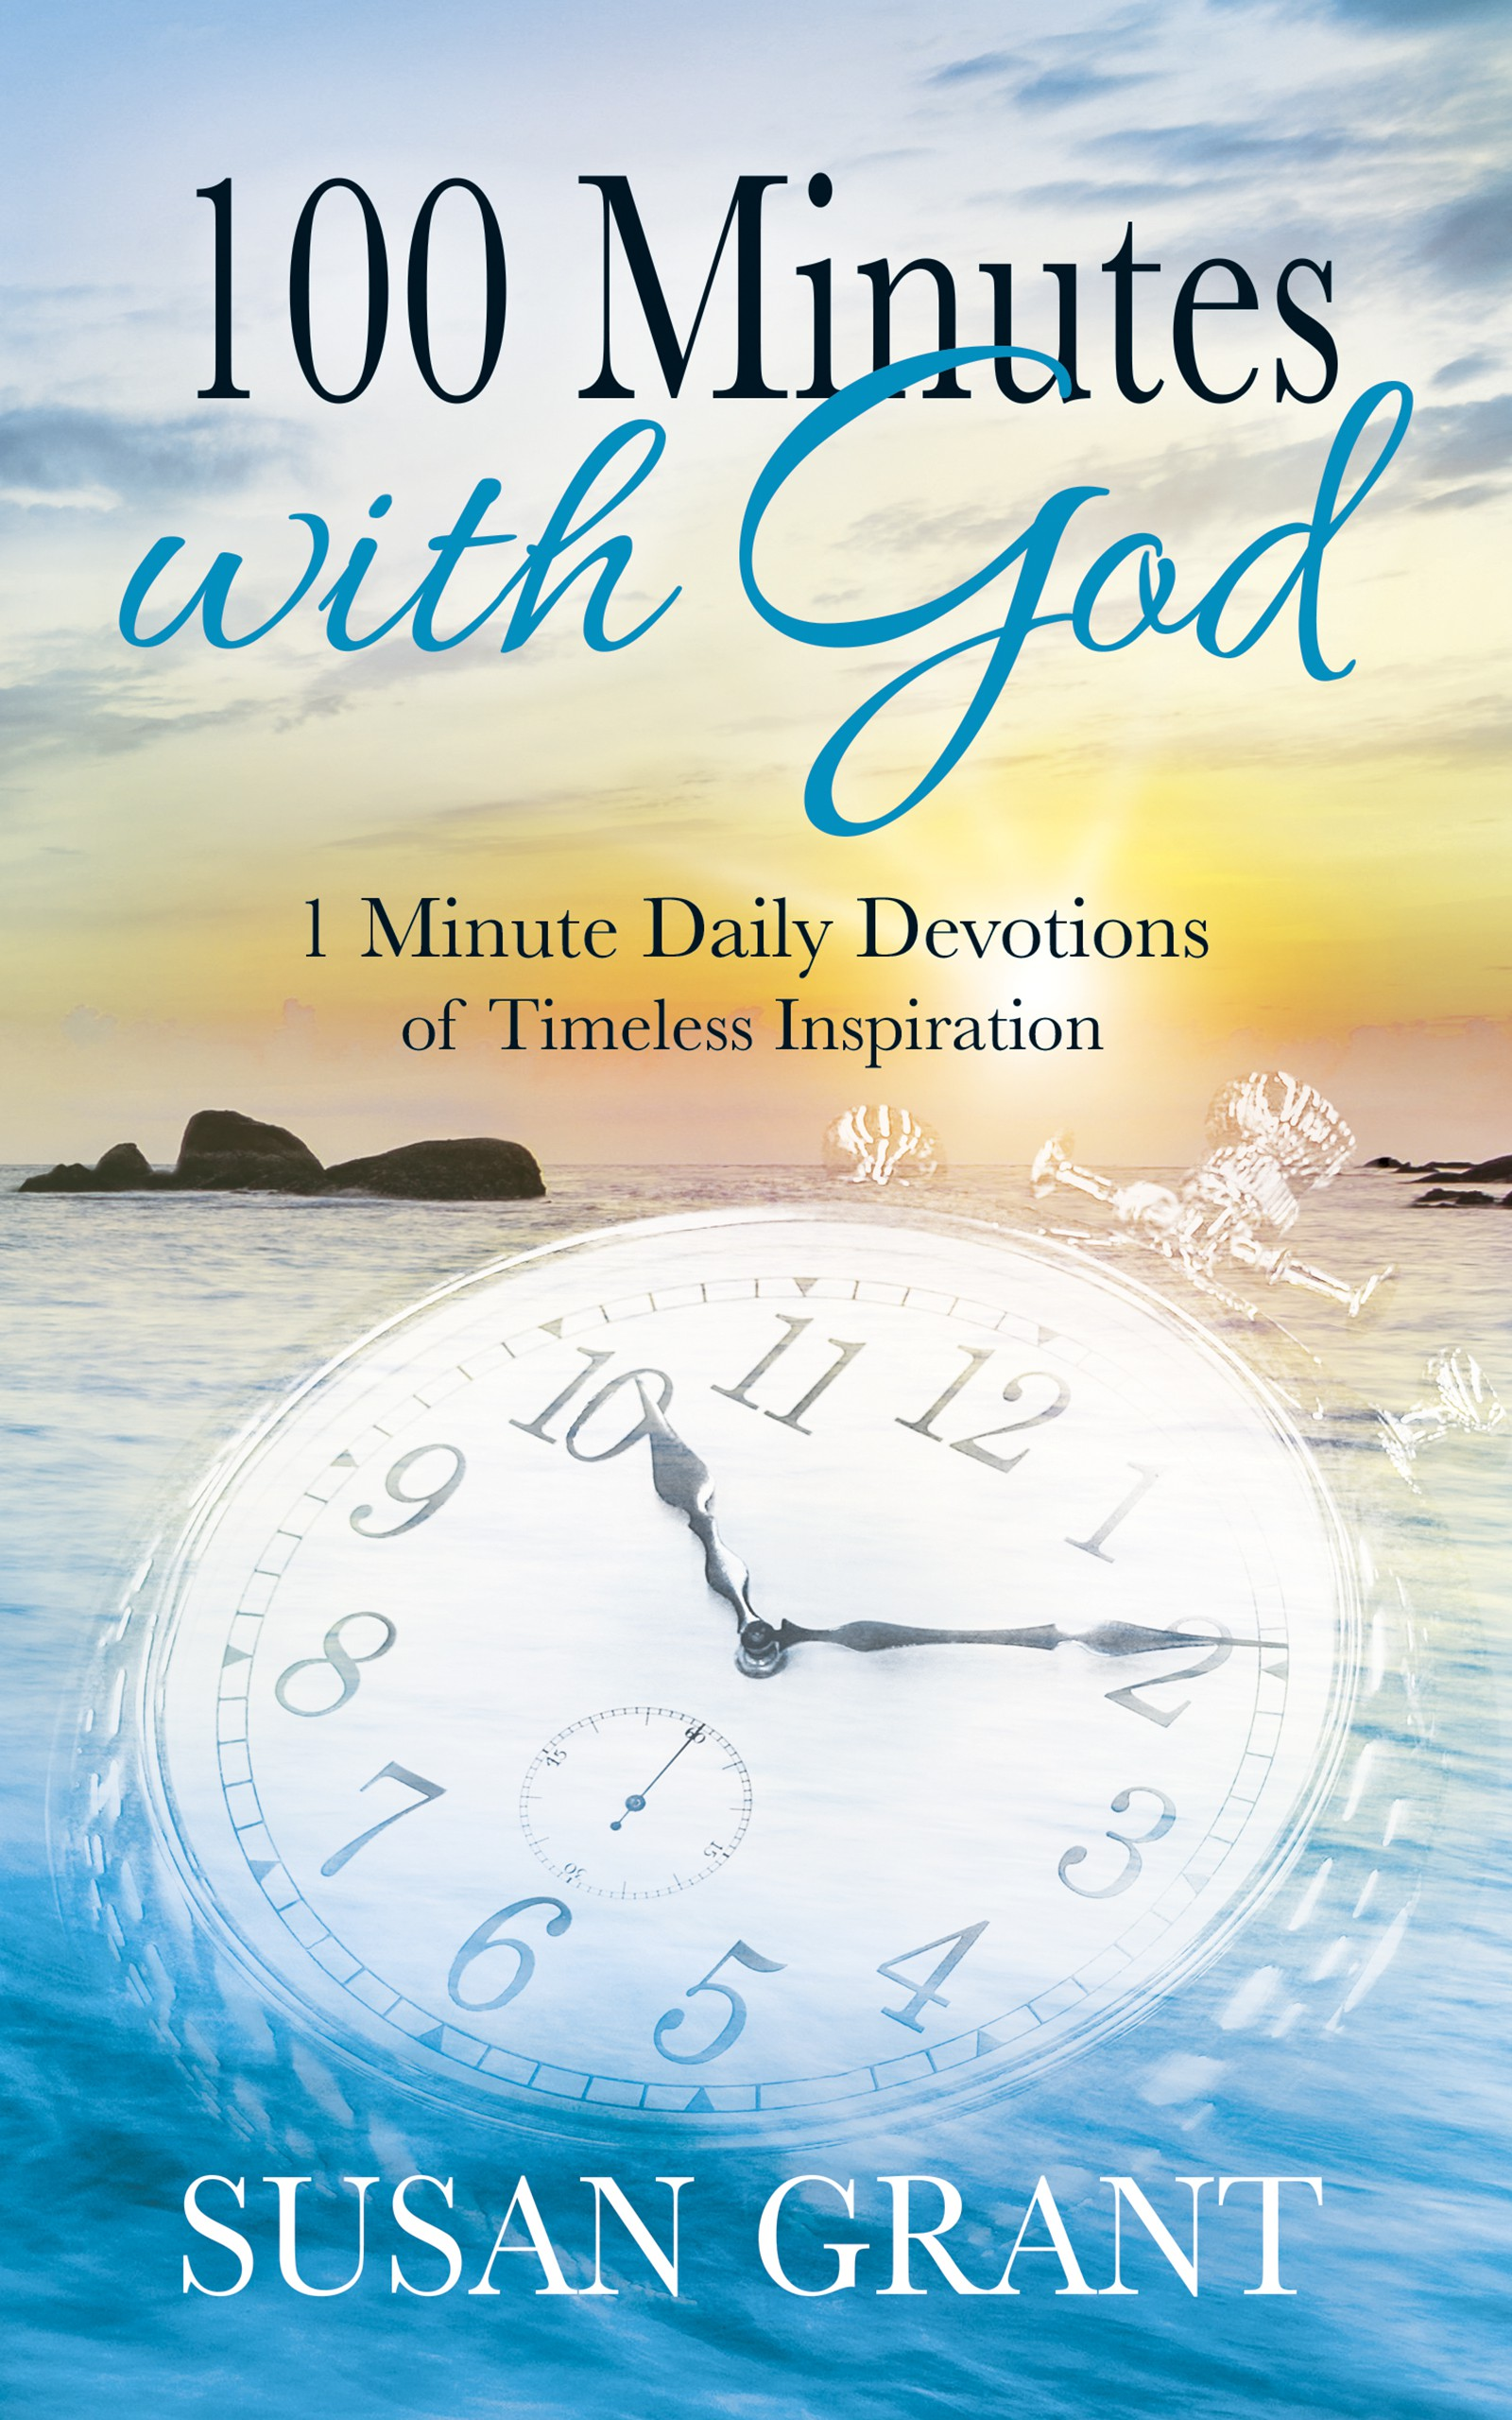 100 Minutes with God Devotion Book